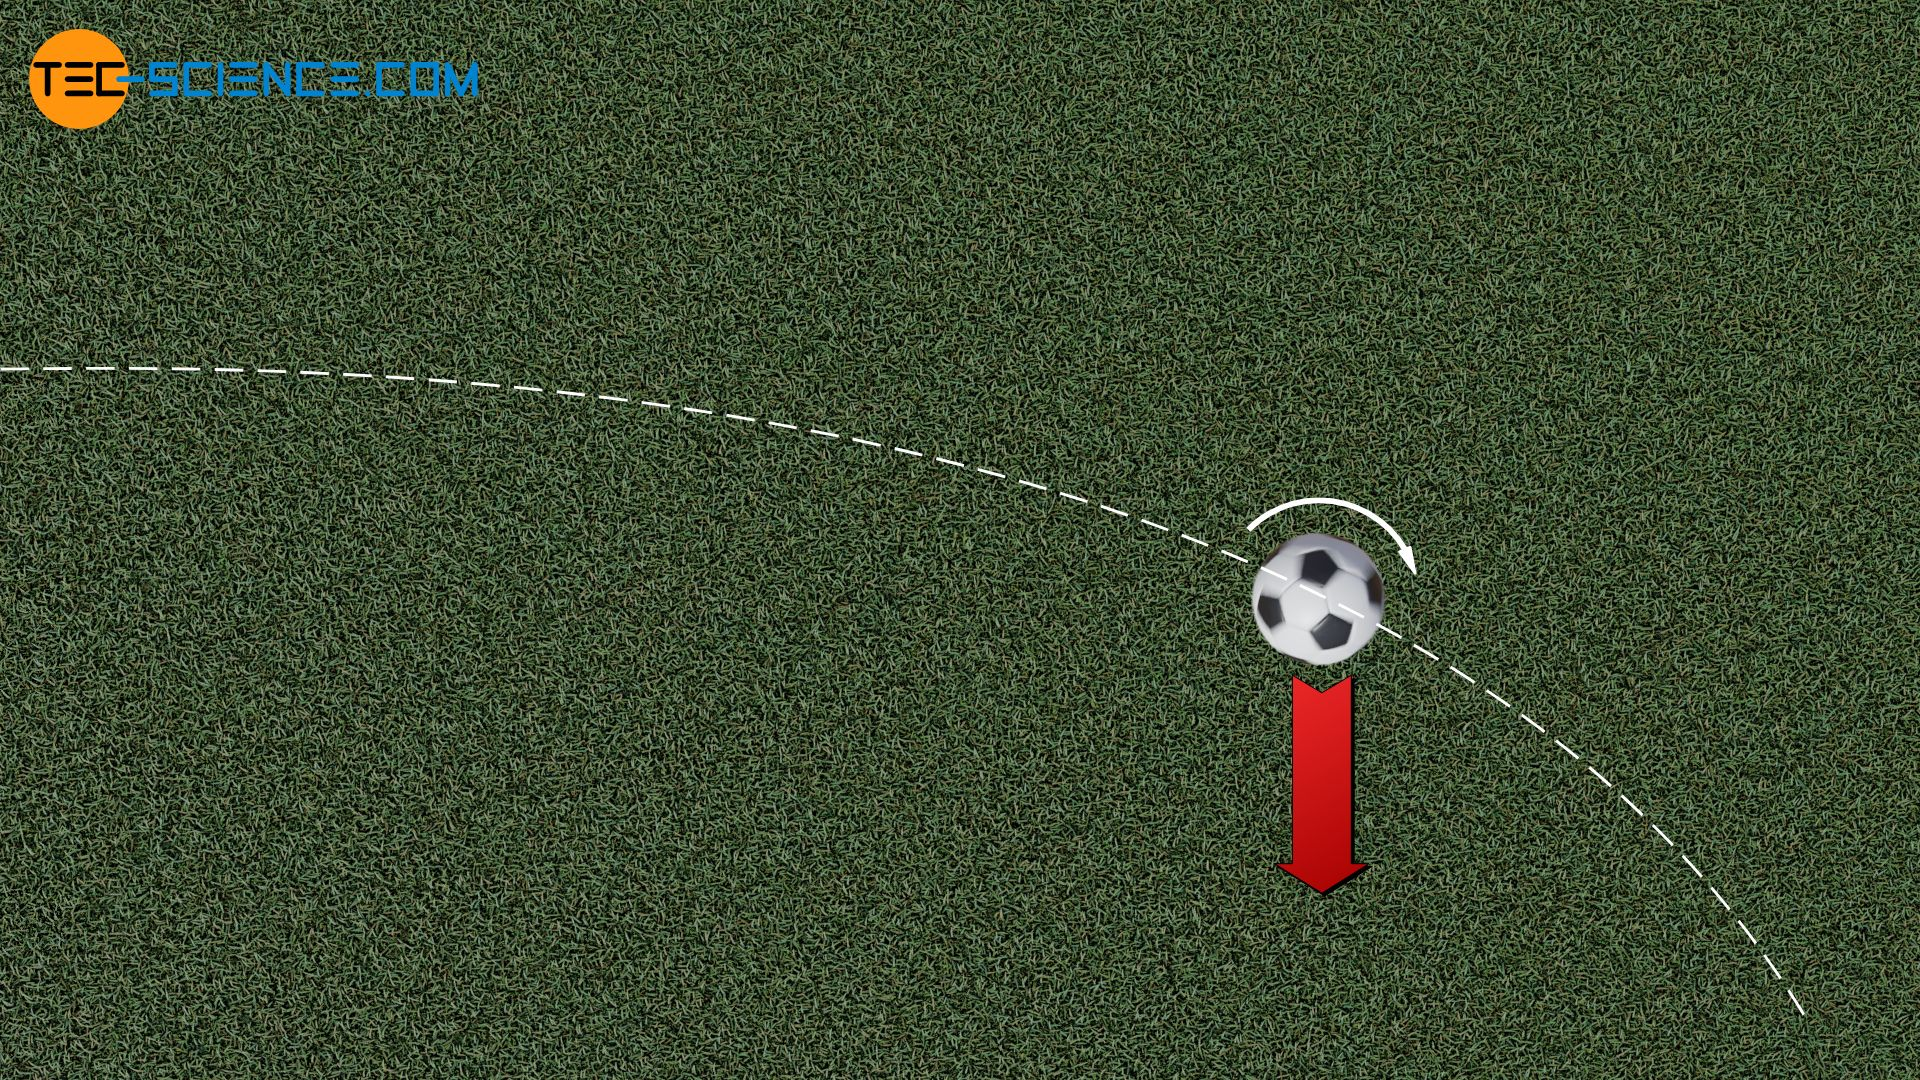 Magnus effect when crossing a football